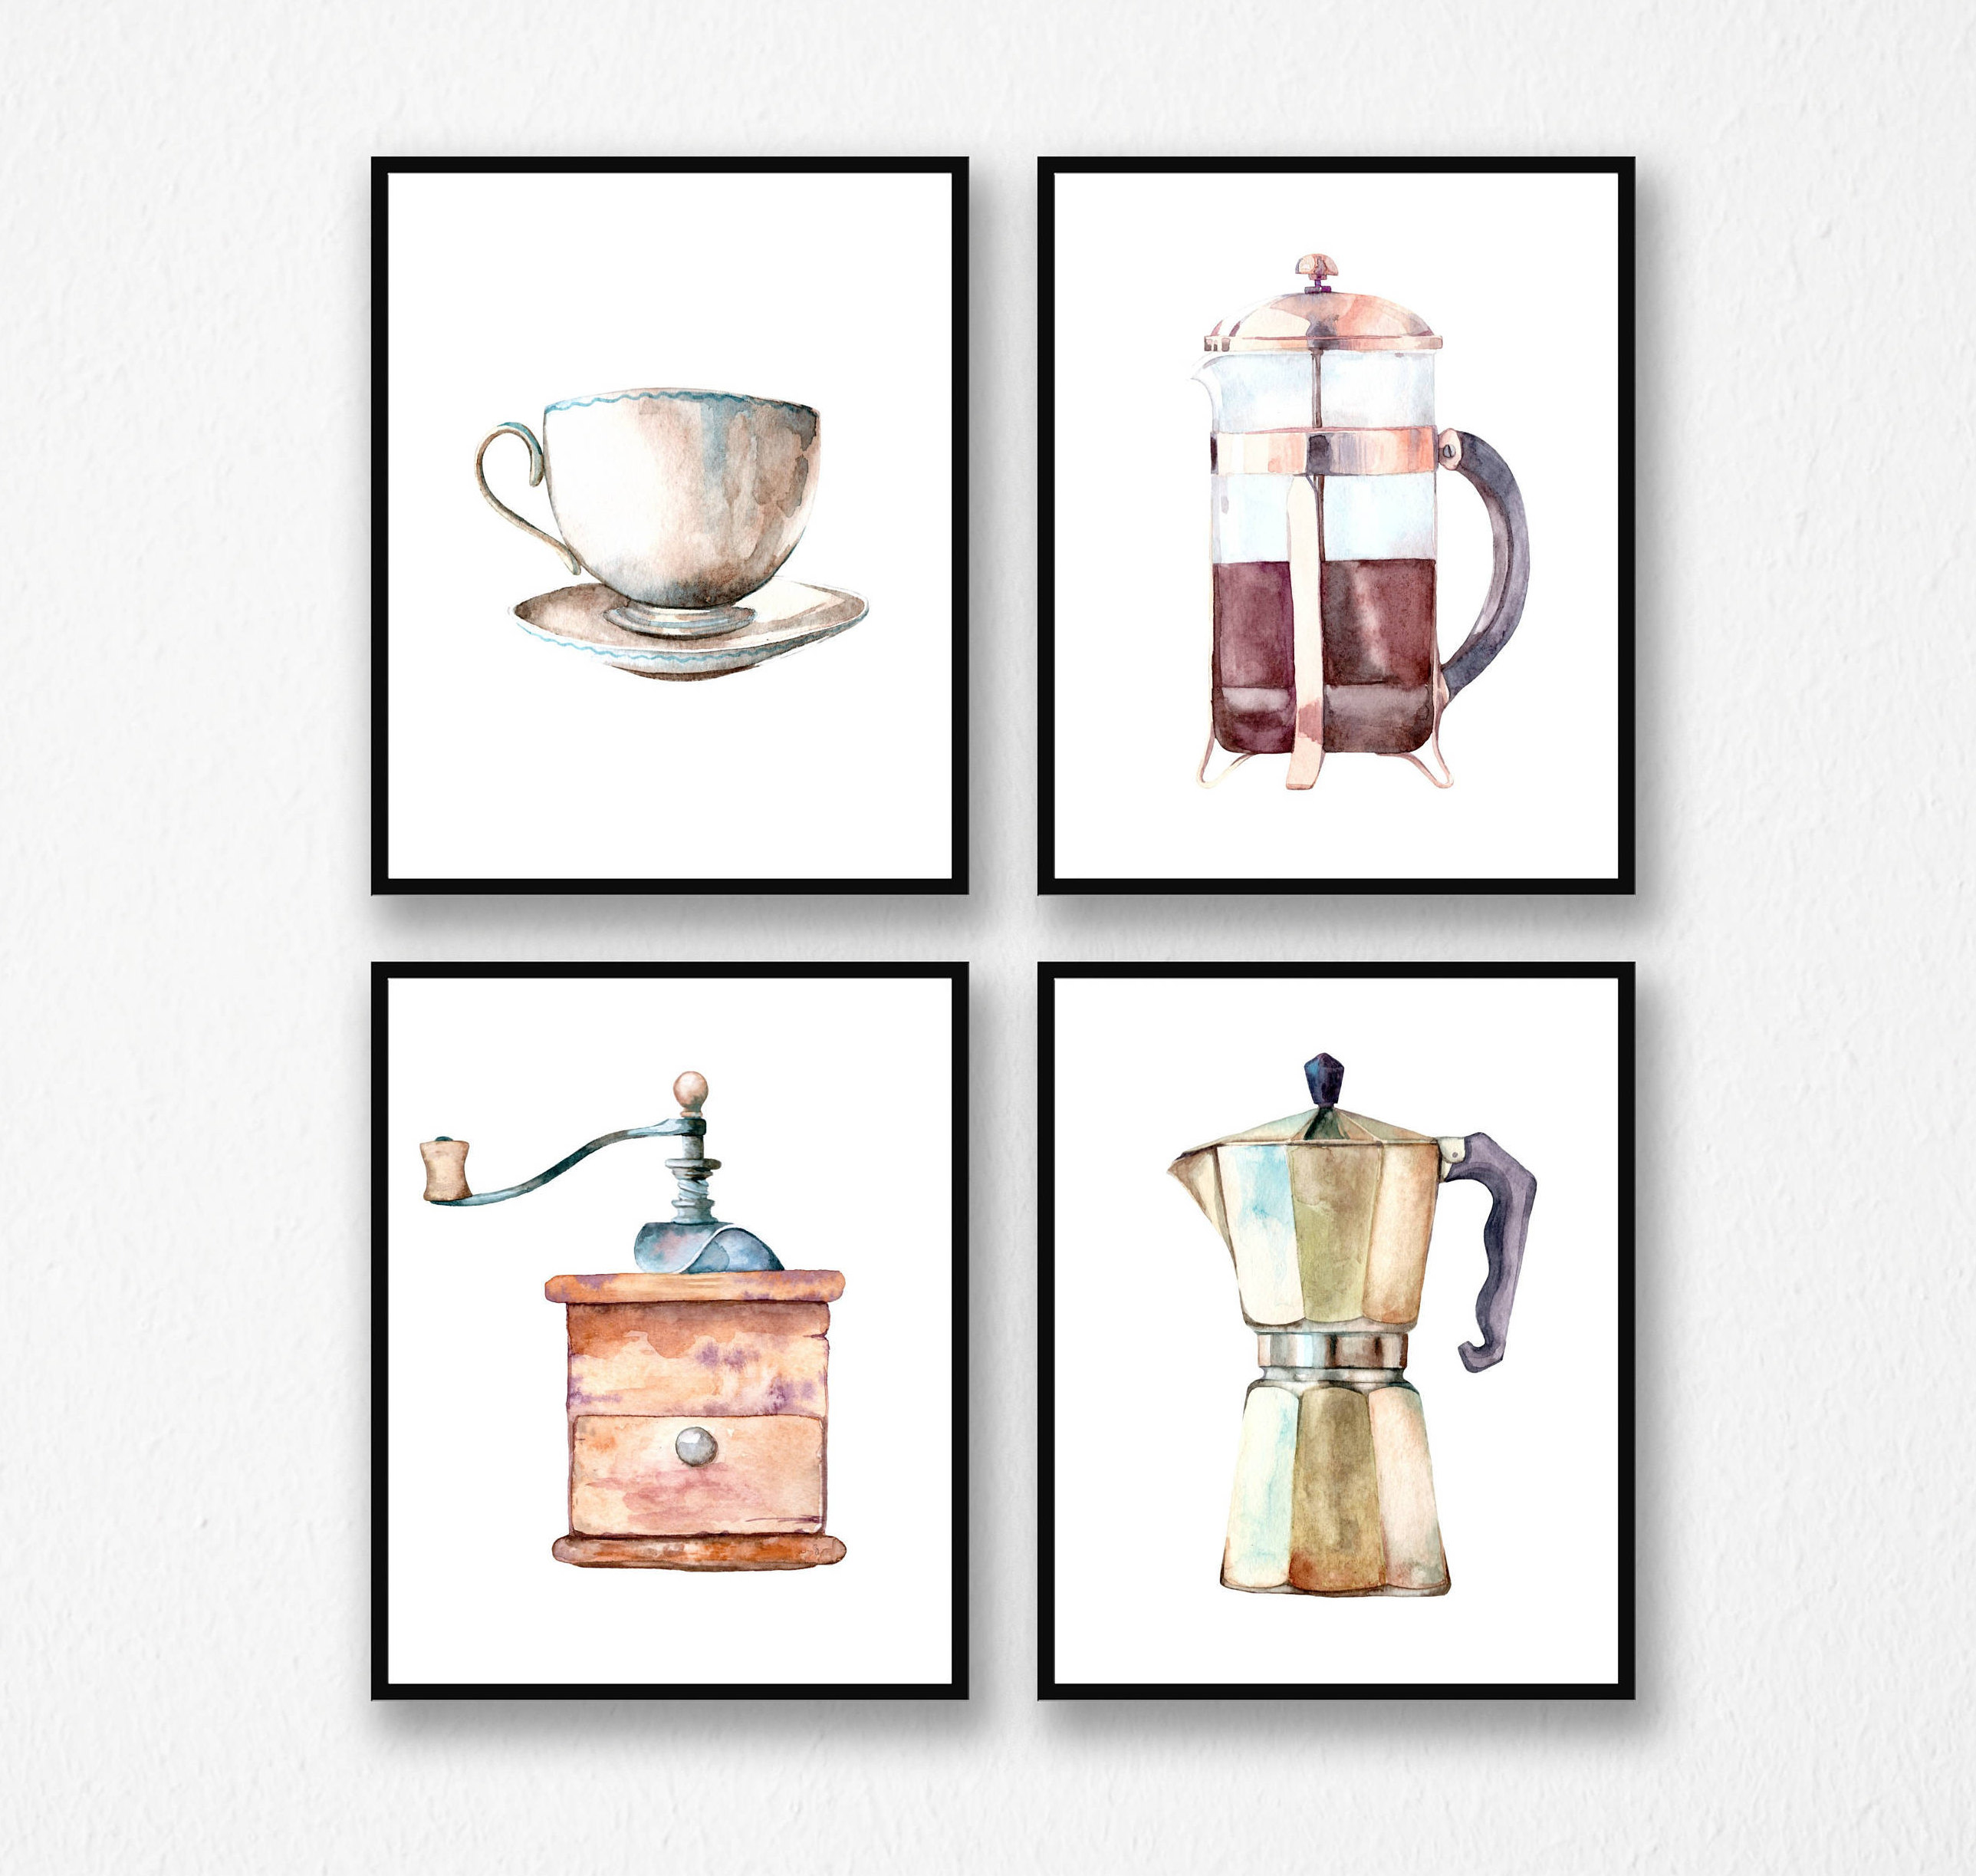 Display your love for all things caffeinated with this art